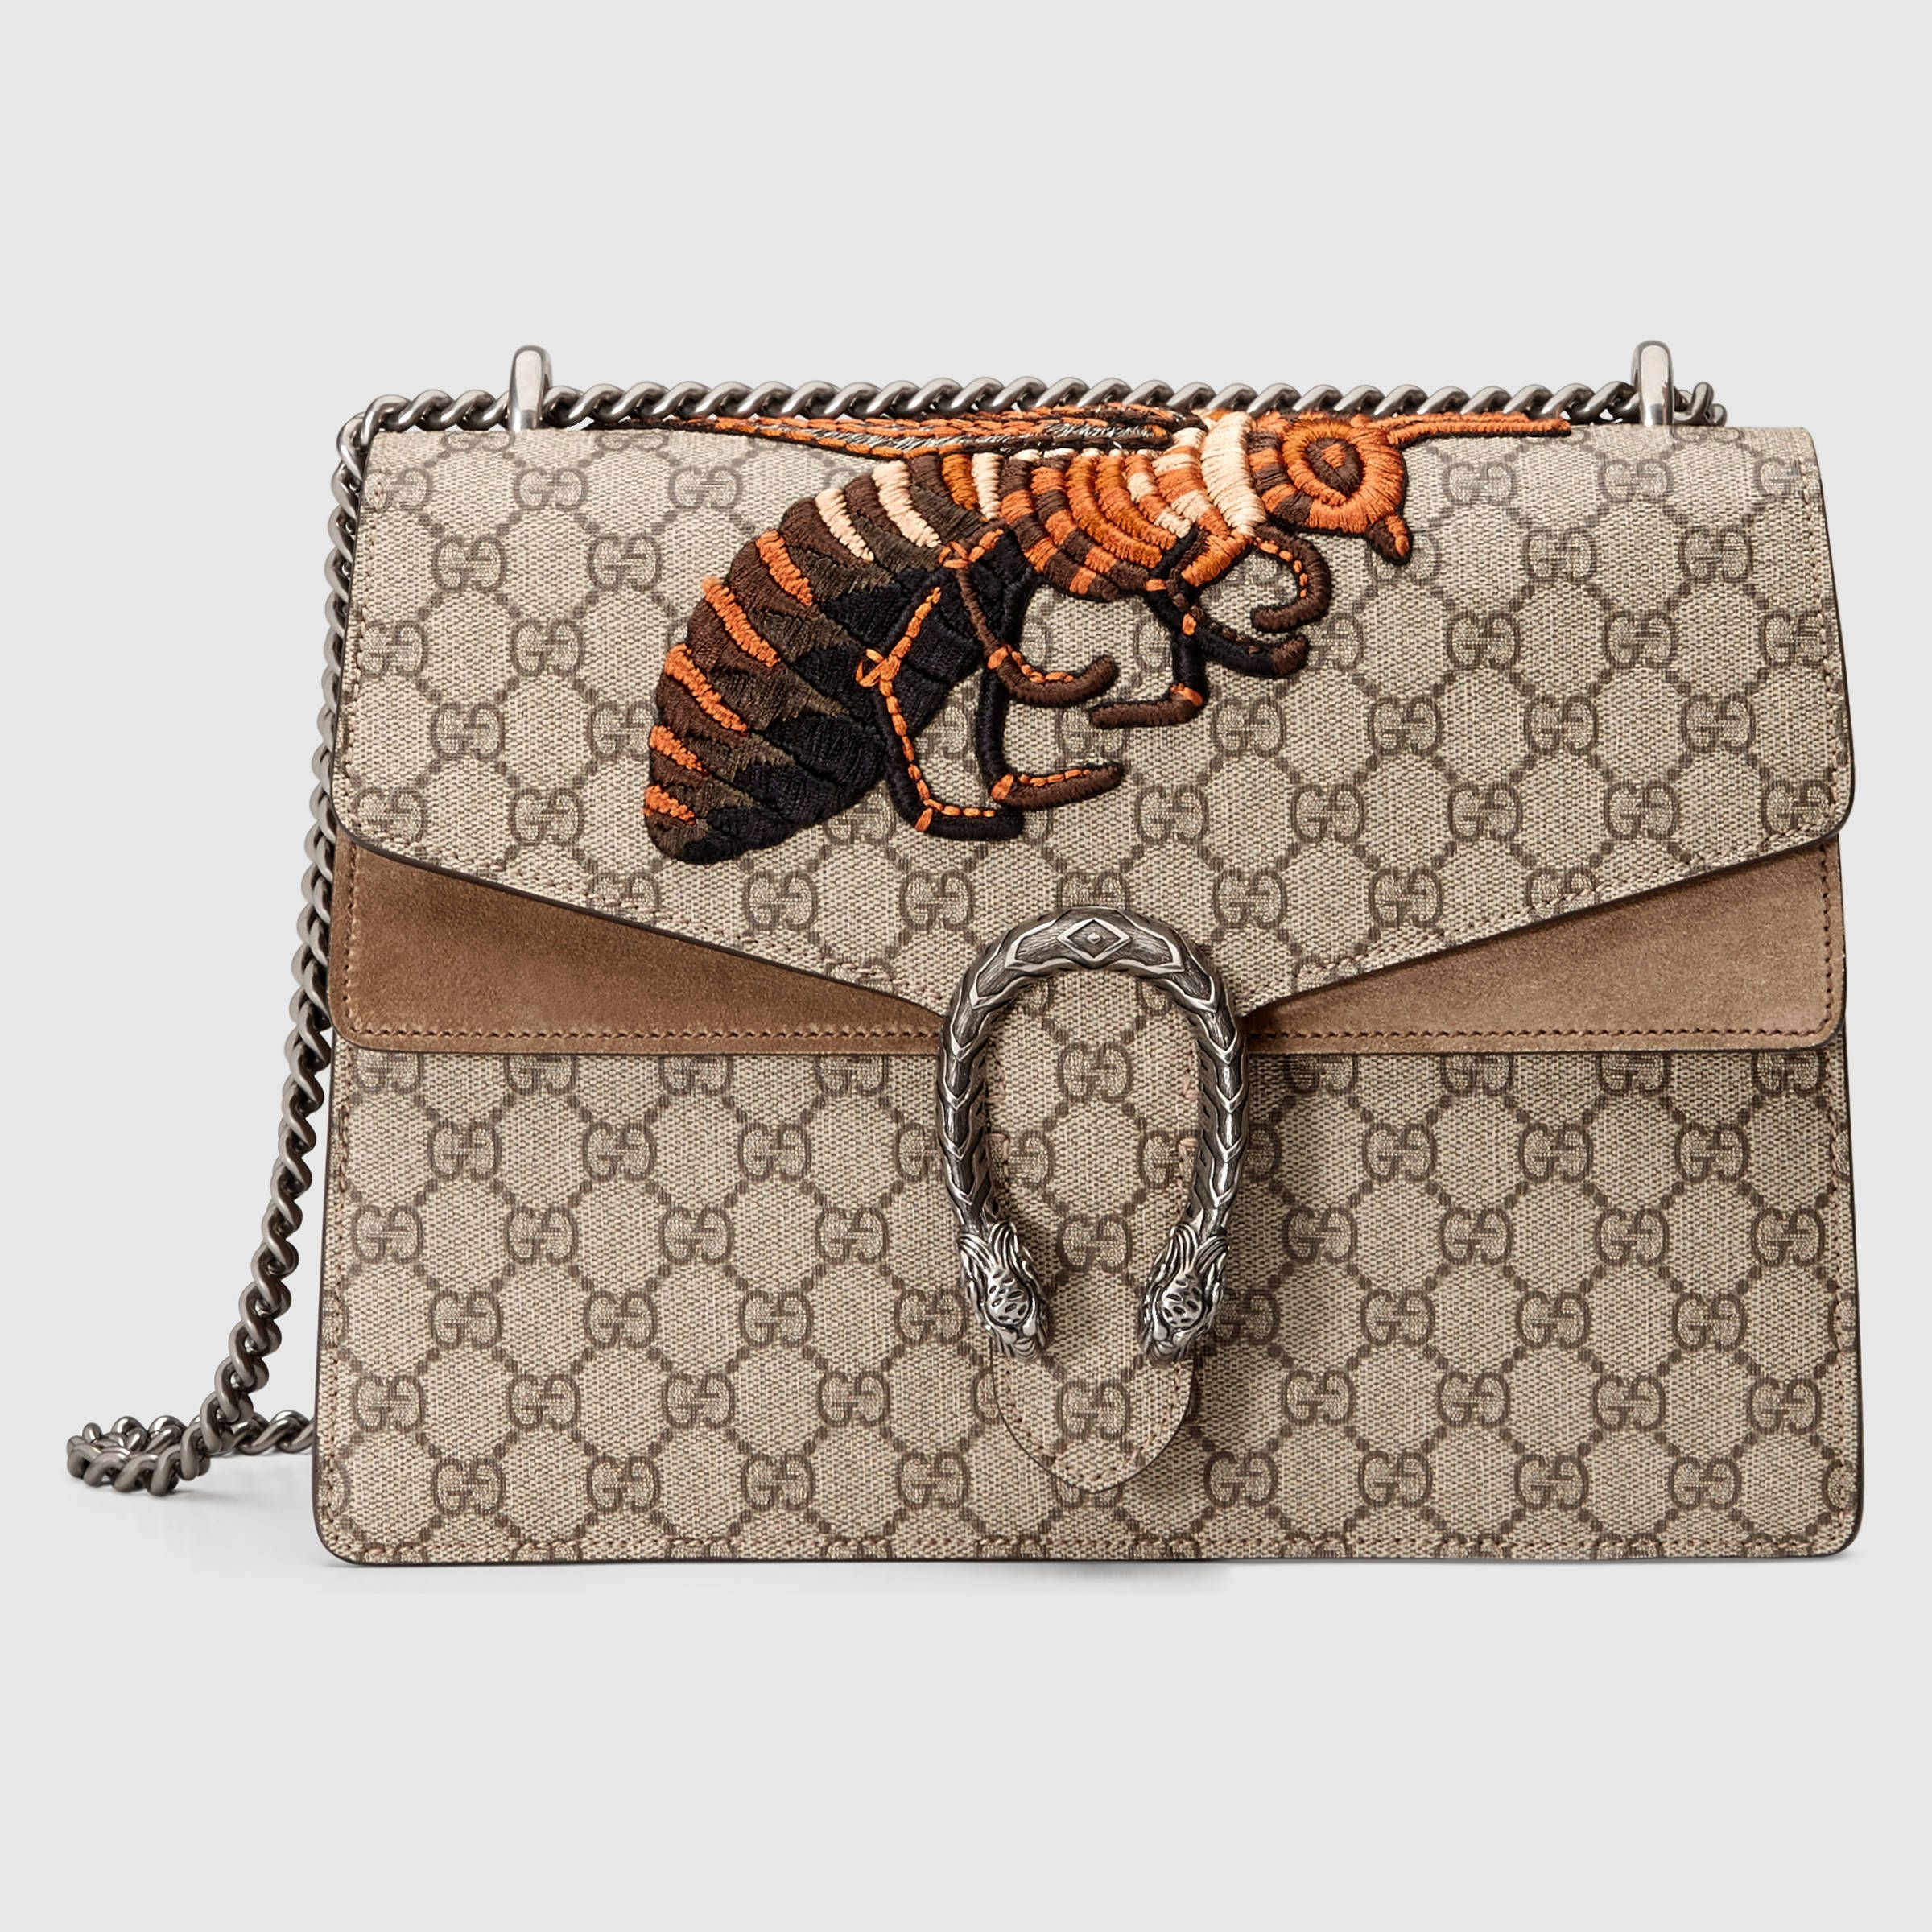 bfab82b40 Shop the Dionysus medium GG shoulder bag by Gucci. An embroidered GG  Supreme canvas bag with our textured tiger head closure-a unique detail  referencing the ...